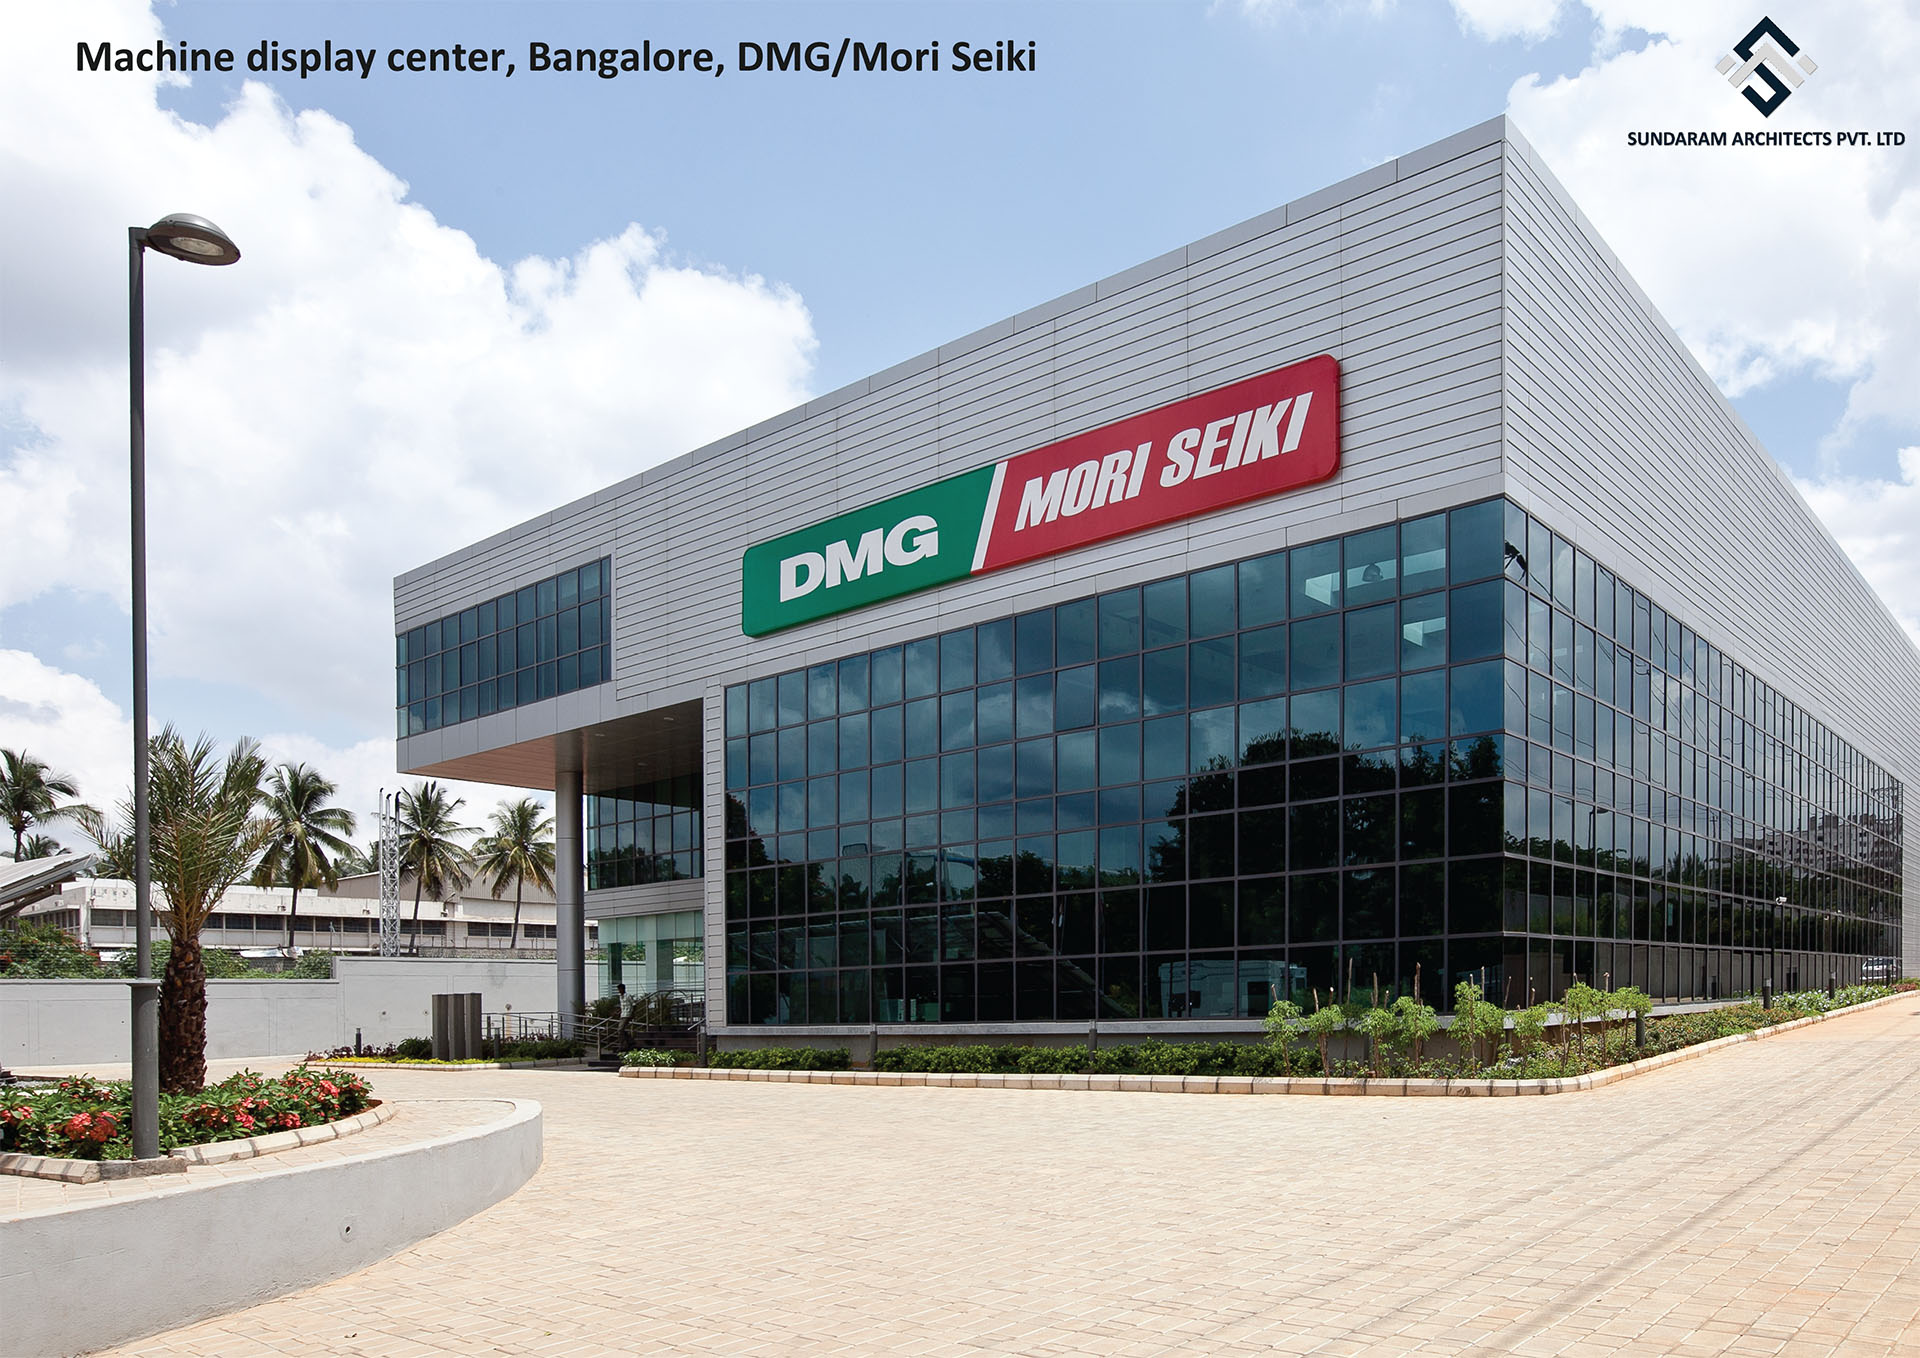 Machine Display Center, Bangalore, DMG/Mori Seiki - Industrial & Manufacturing Design